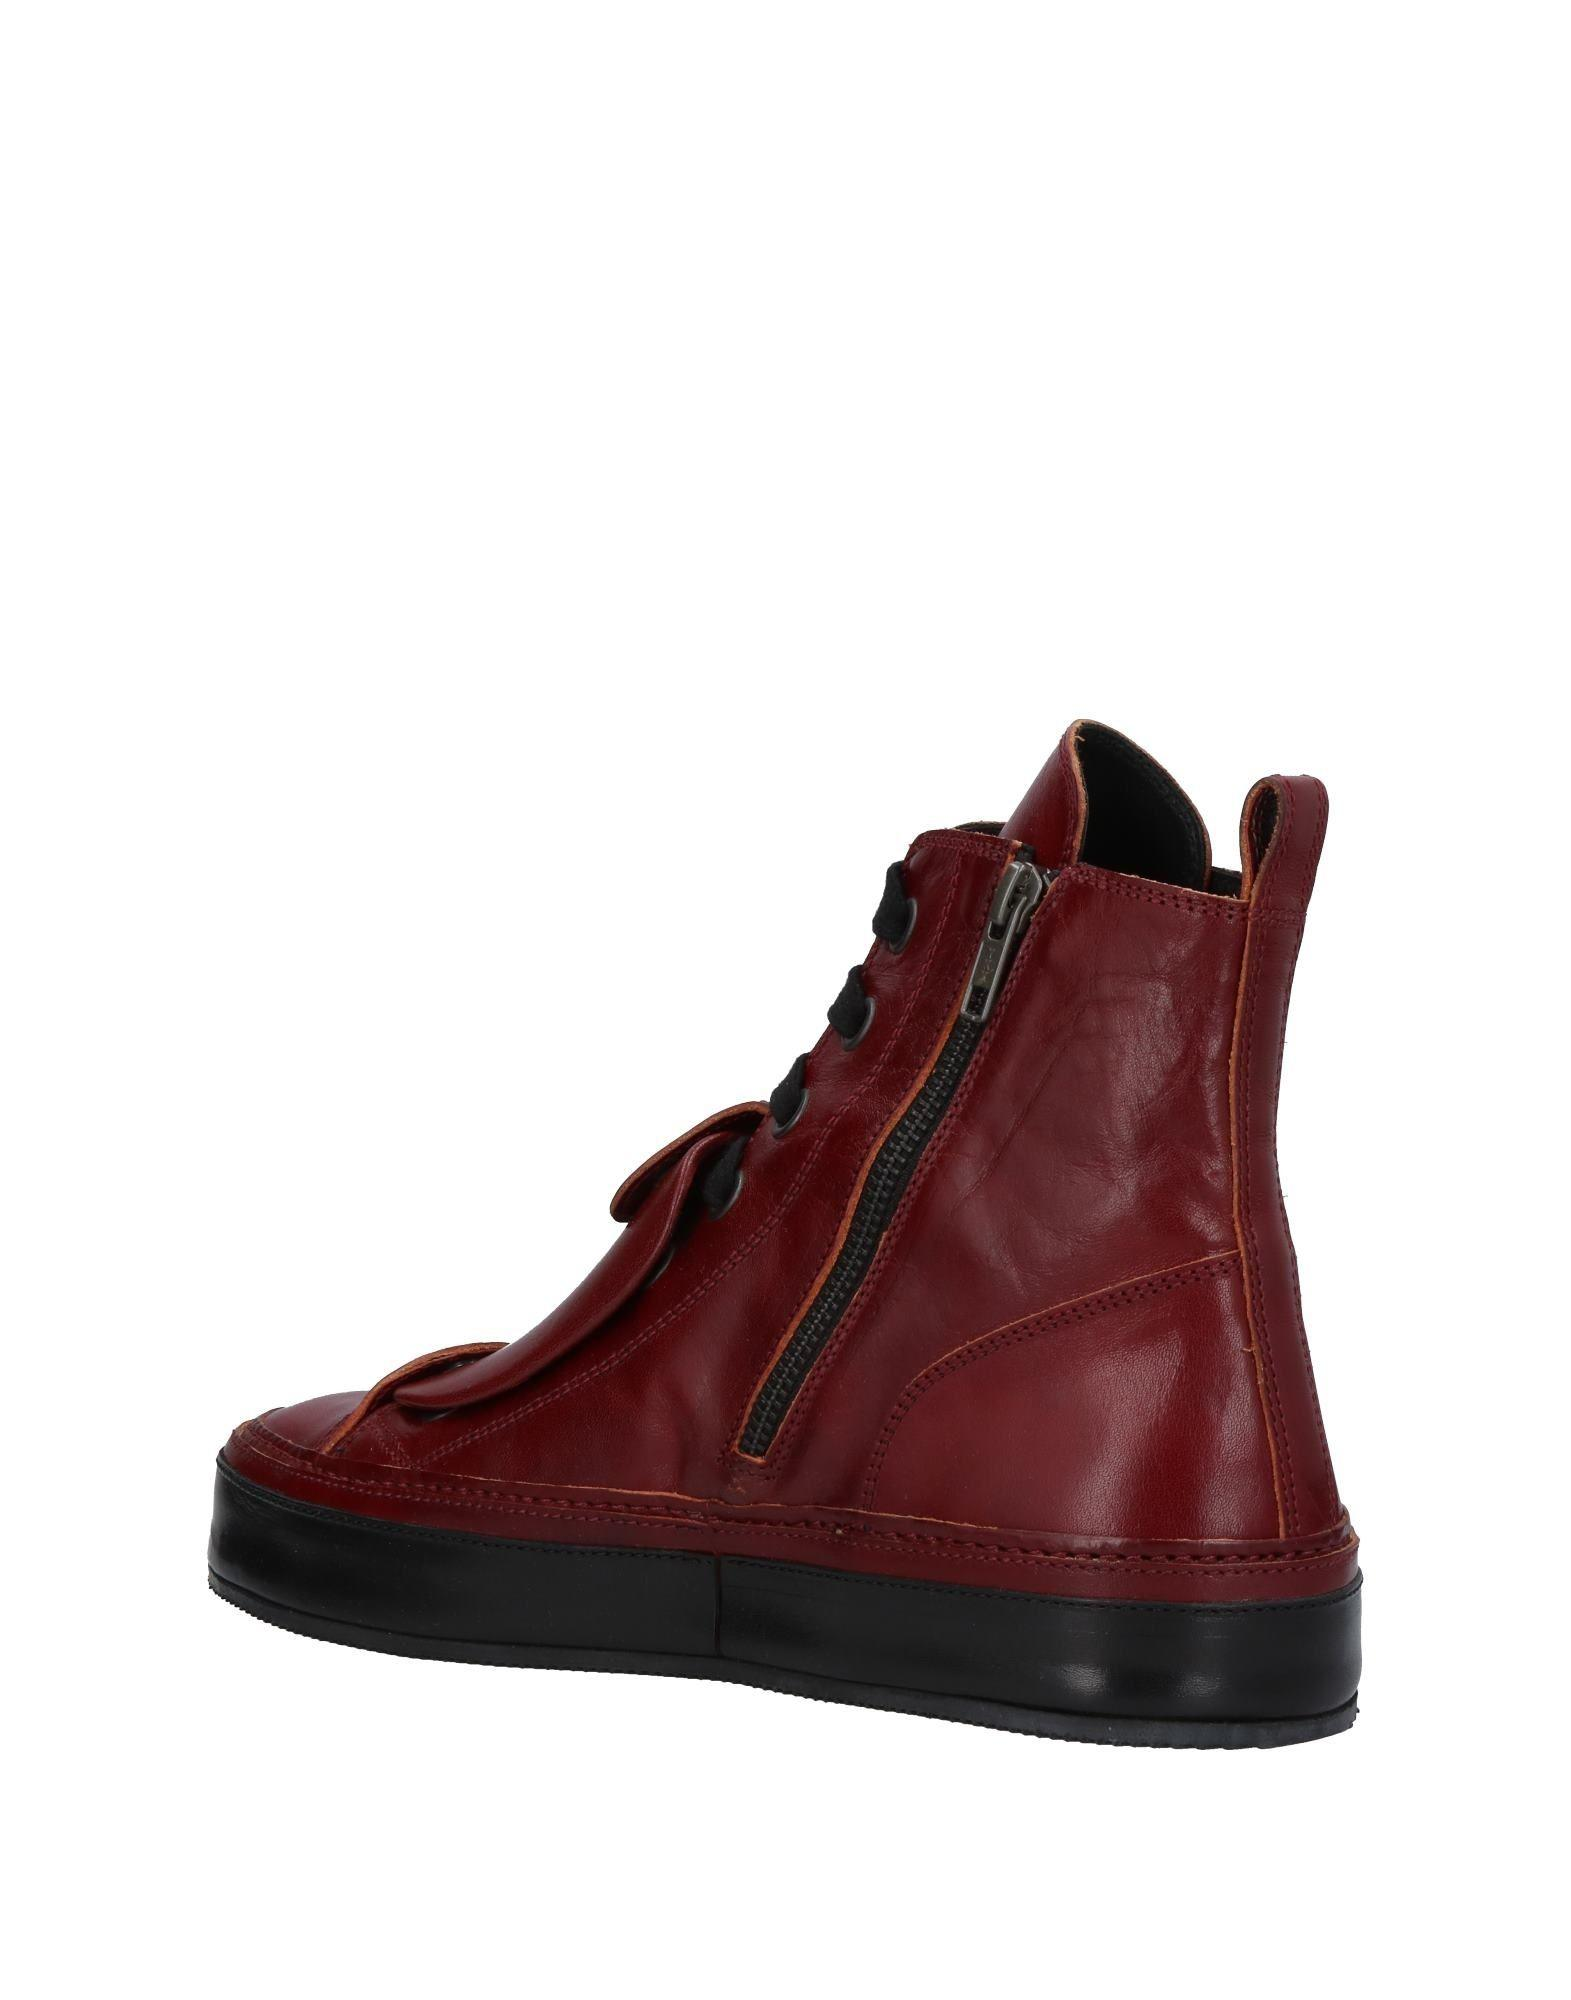 Ann Demeulemeester Leather High-tops & Sneakers in Maroon (Red)